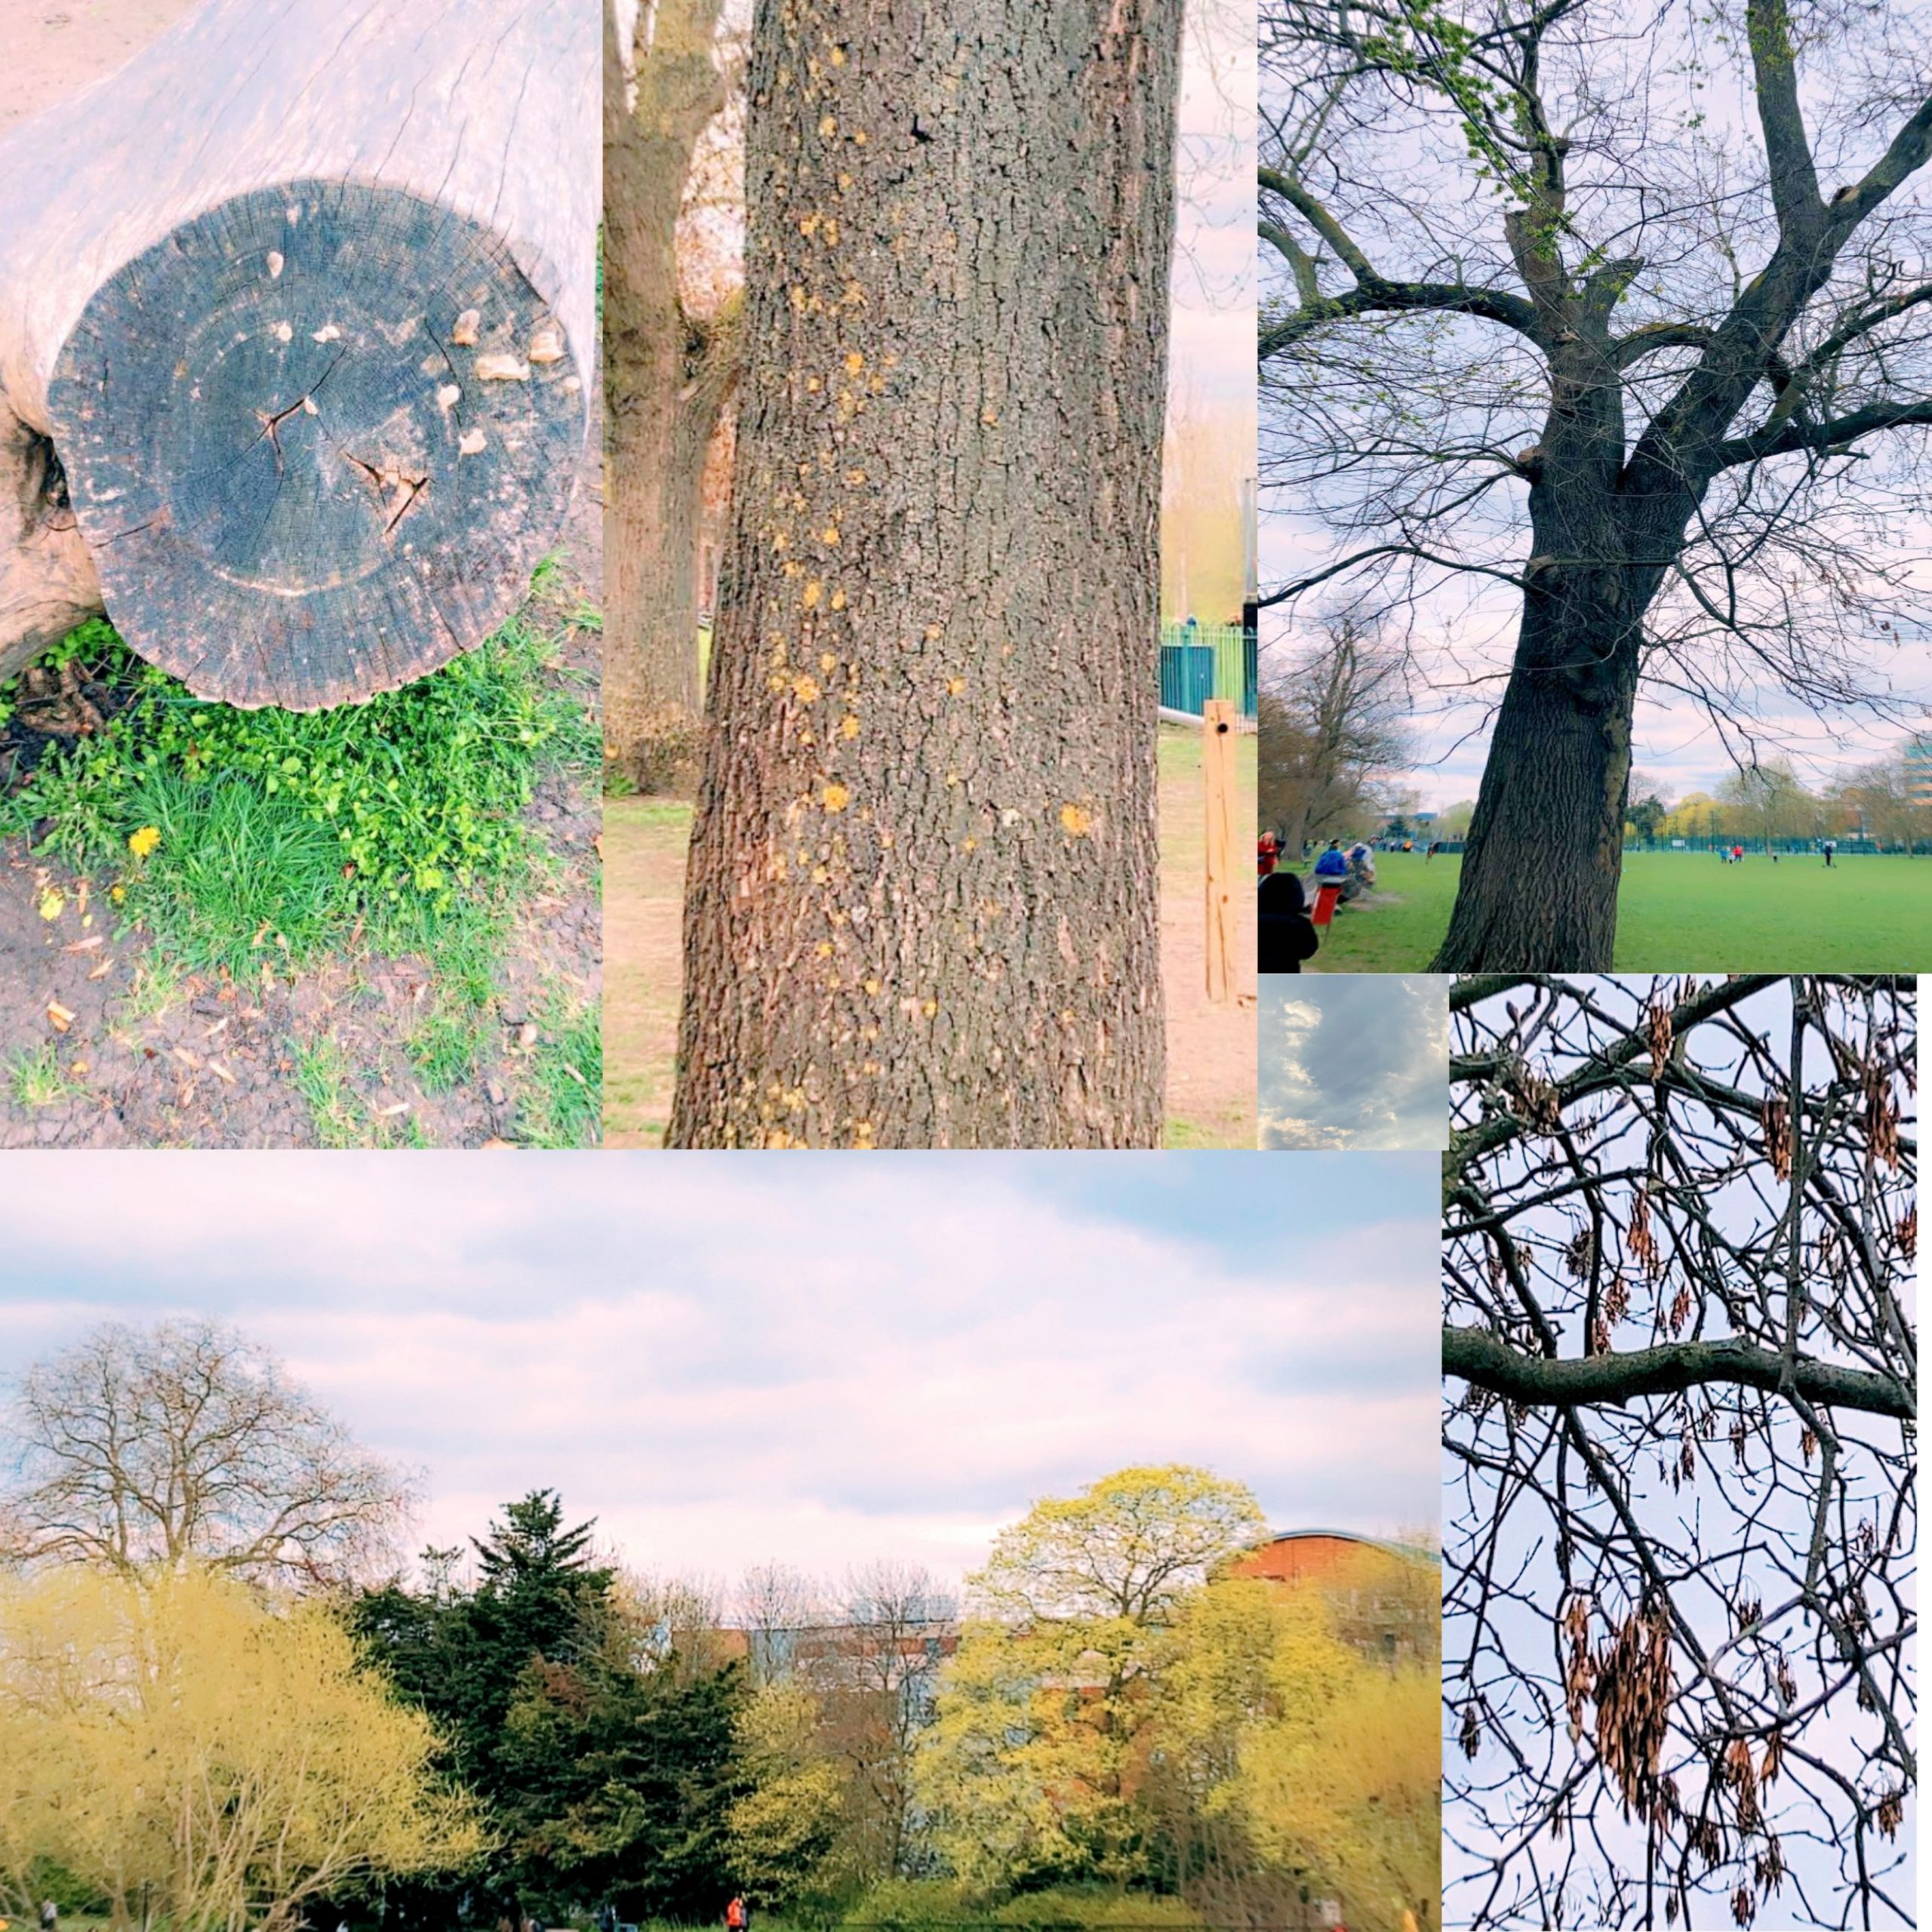 Photographing local trees